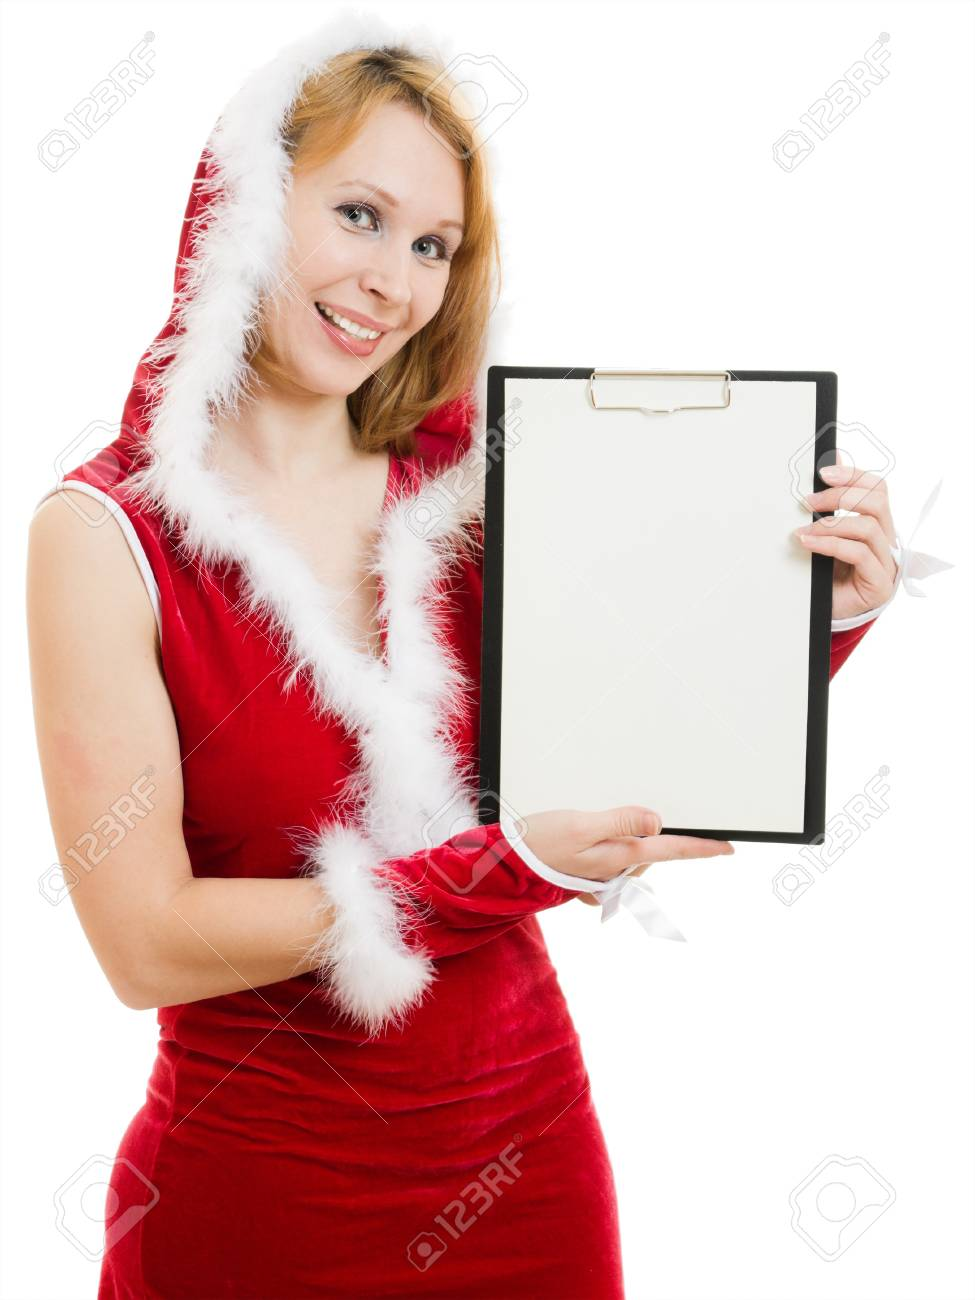 Happy Christmas woman holds a white billboard on a white background. Stock Photo - 11570184